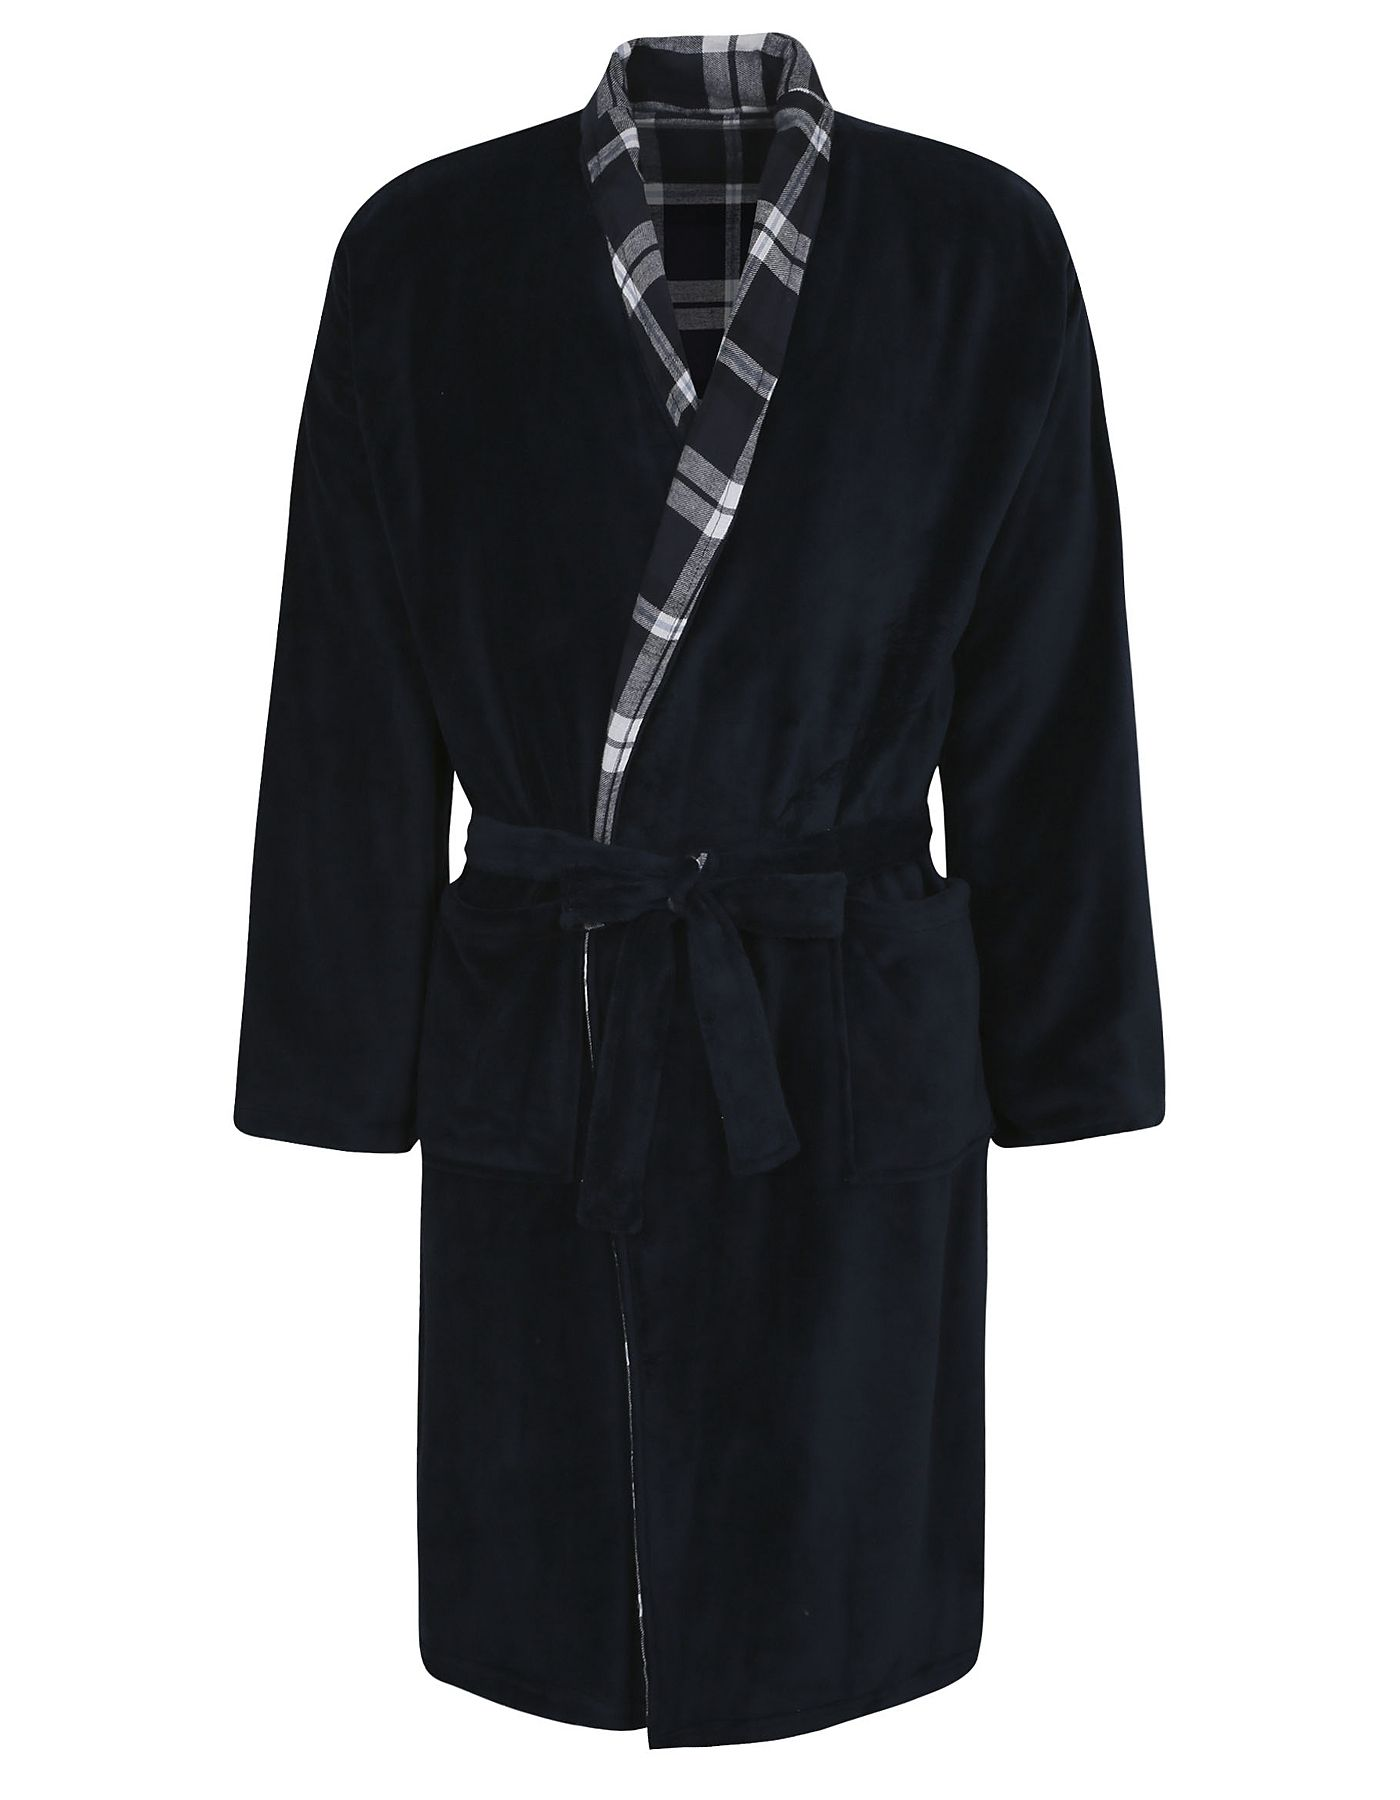 Plaid Reversible Dressing Gown | Men | George at ASDA | AW16 TRENDS ...